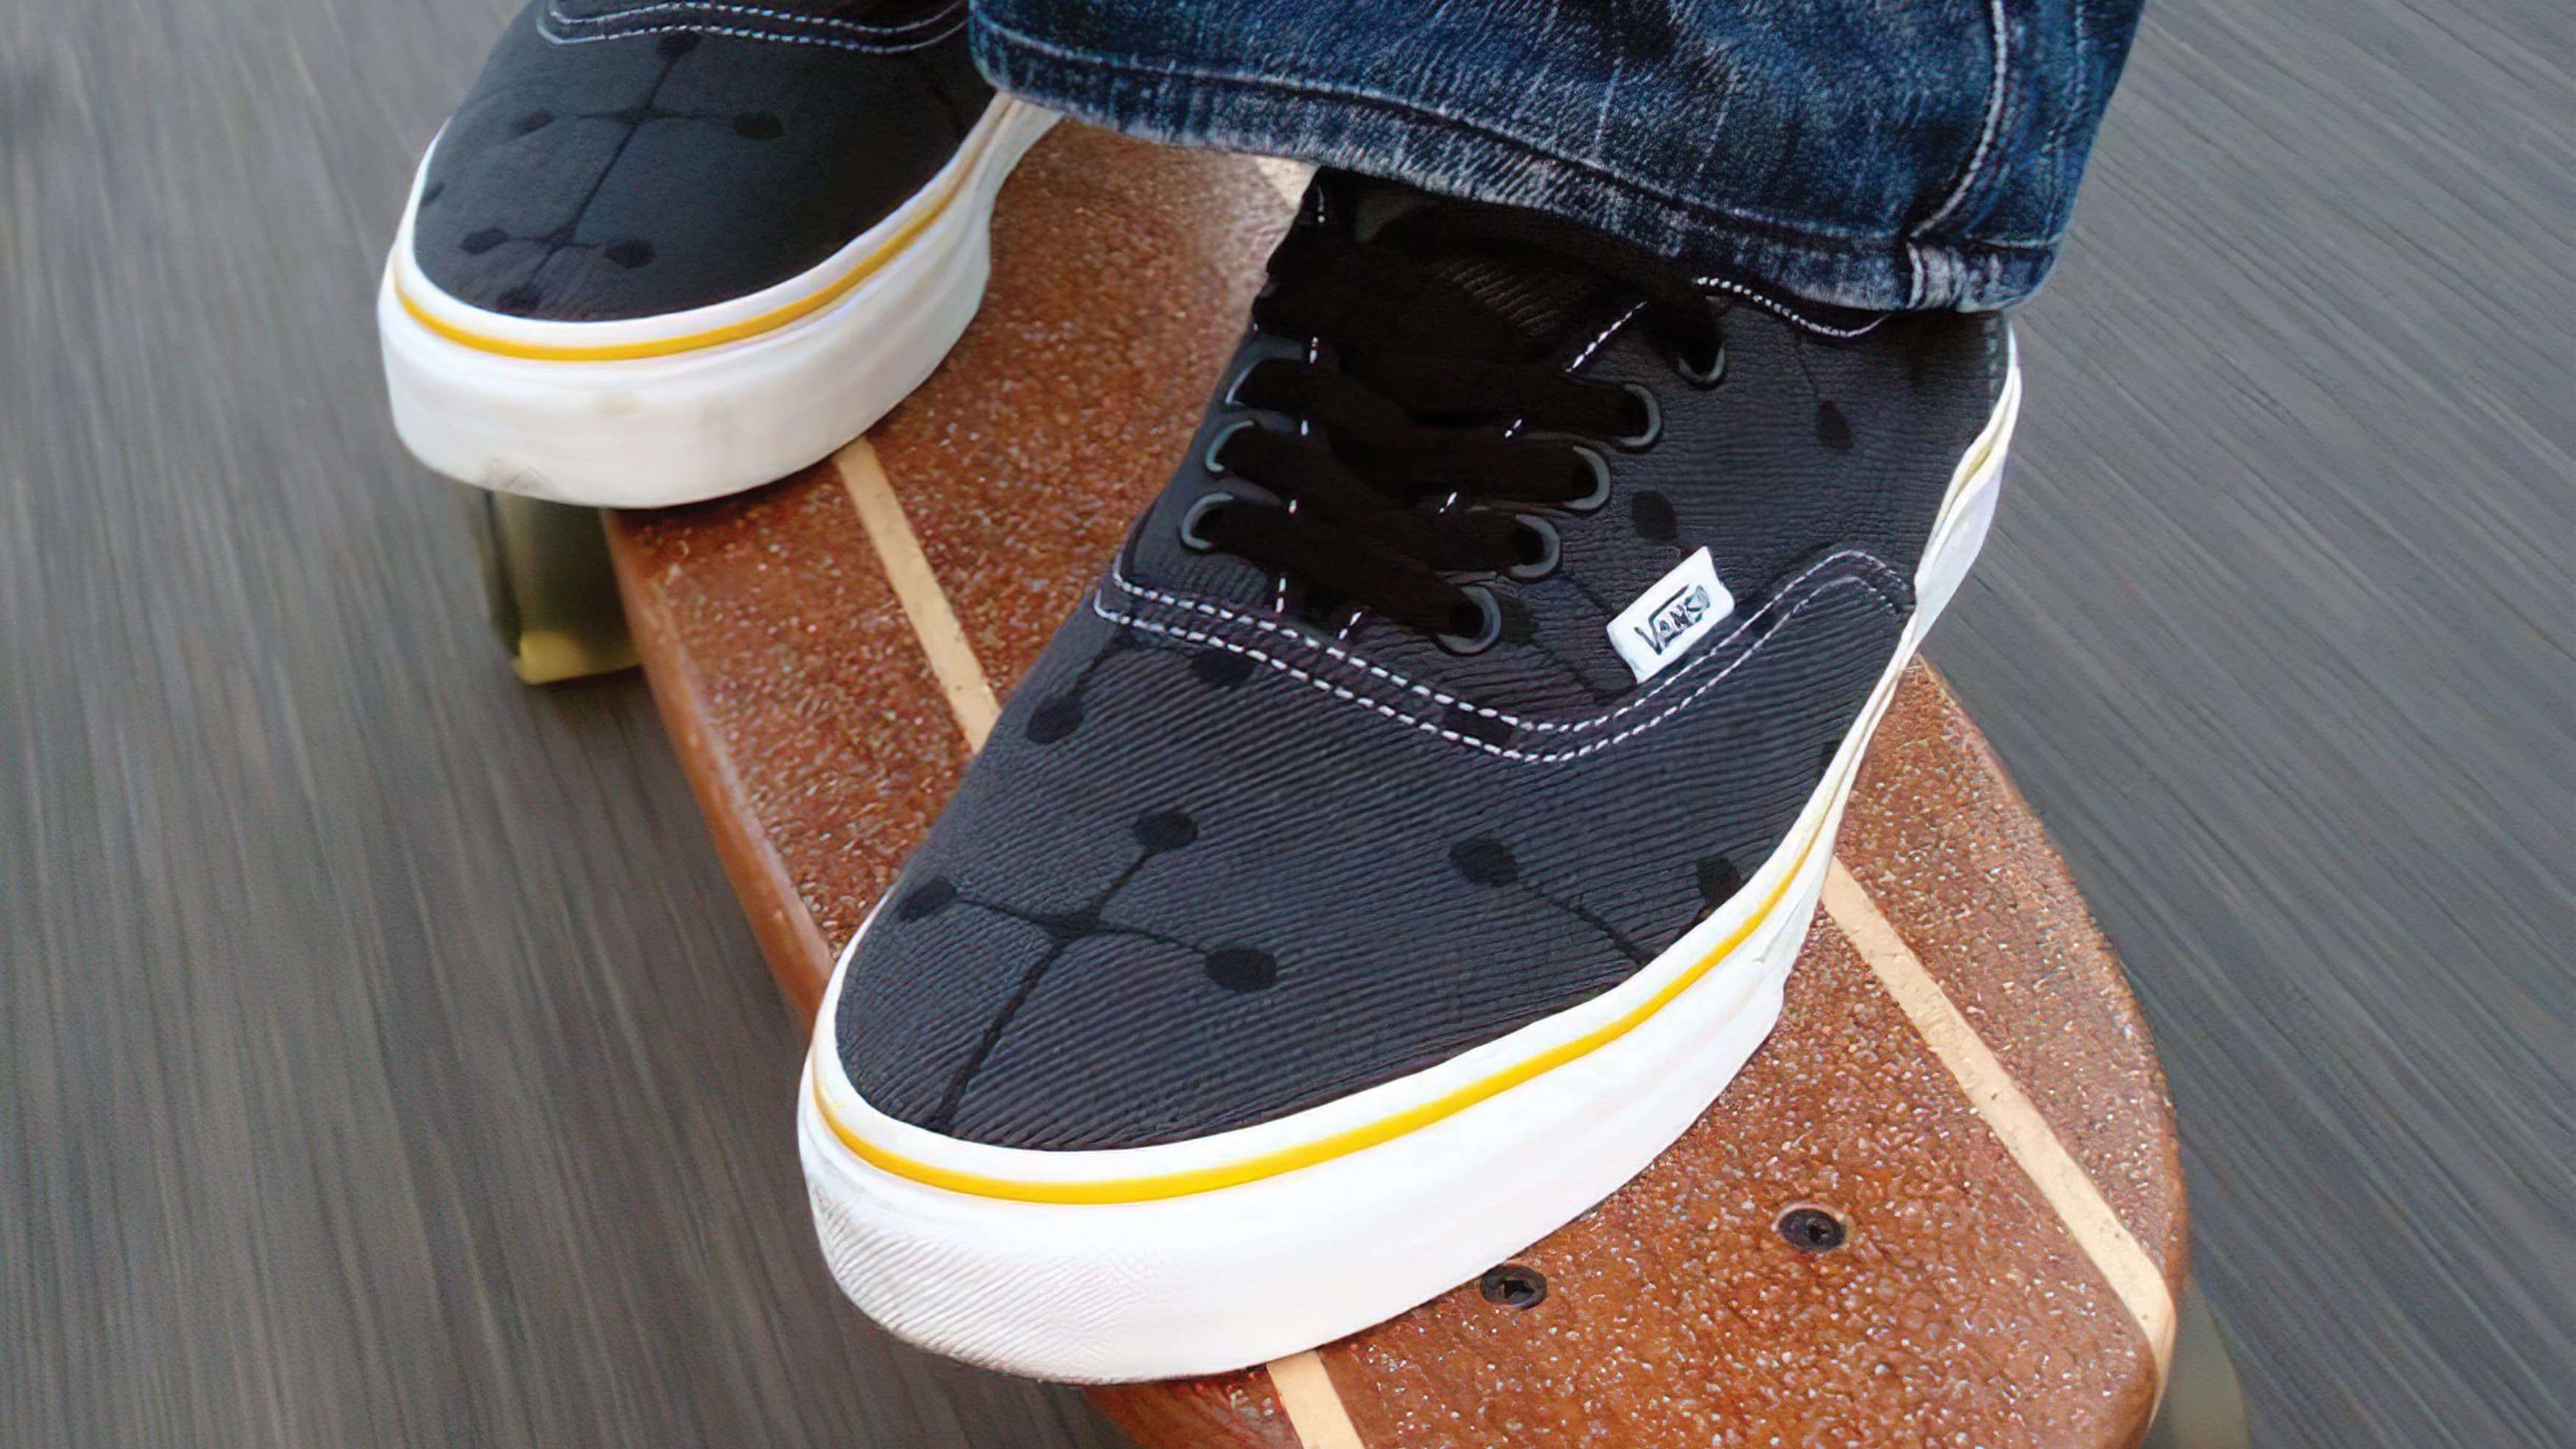 RSM Design collaborated with Vans to create a one-of-a-kind pair of shoes.